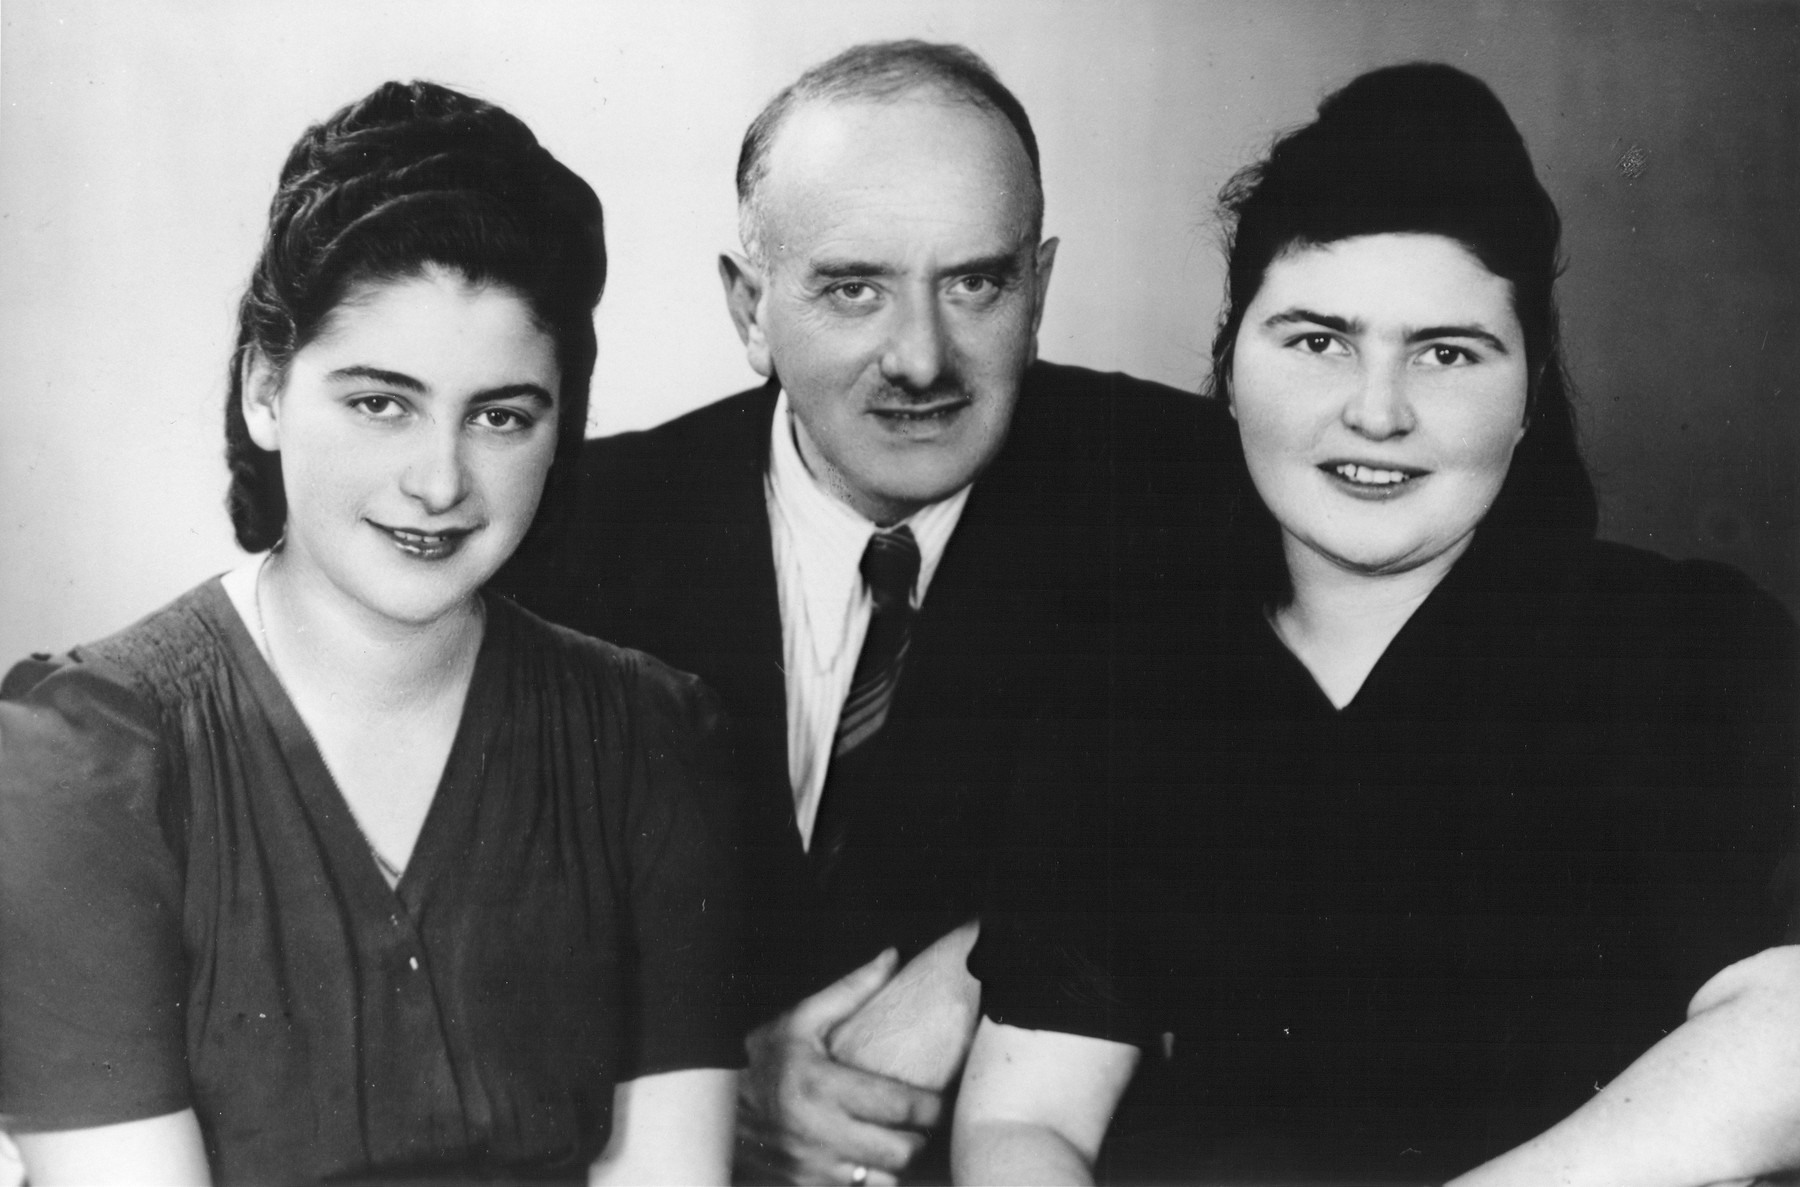 Group portrait of Jewish survivors in Lodz.  Pictured from left to right are: Rozalia Laks, her uncle Alexander Laks, and her cousin Anja Ptashnik.